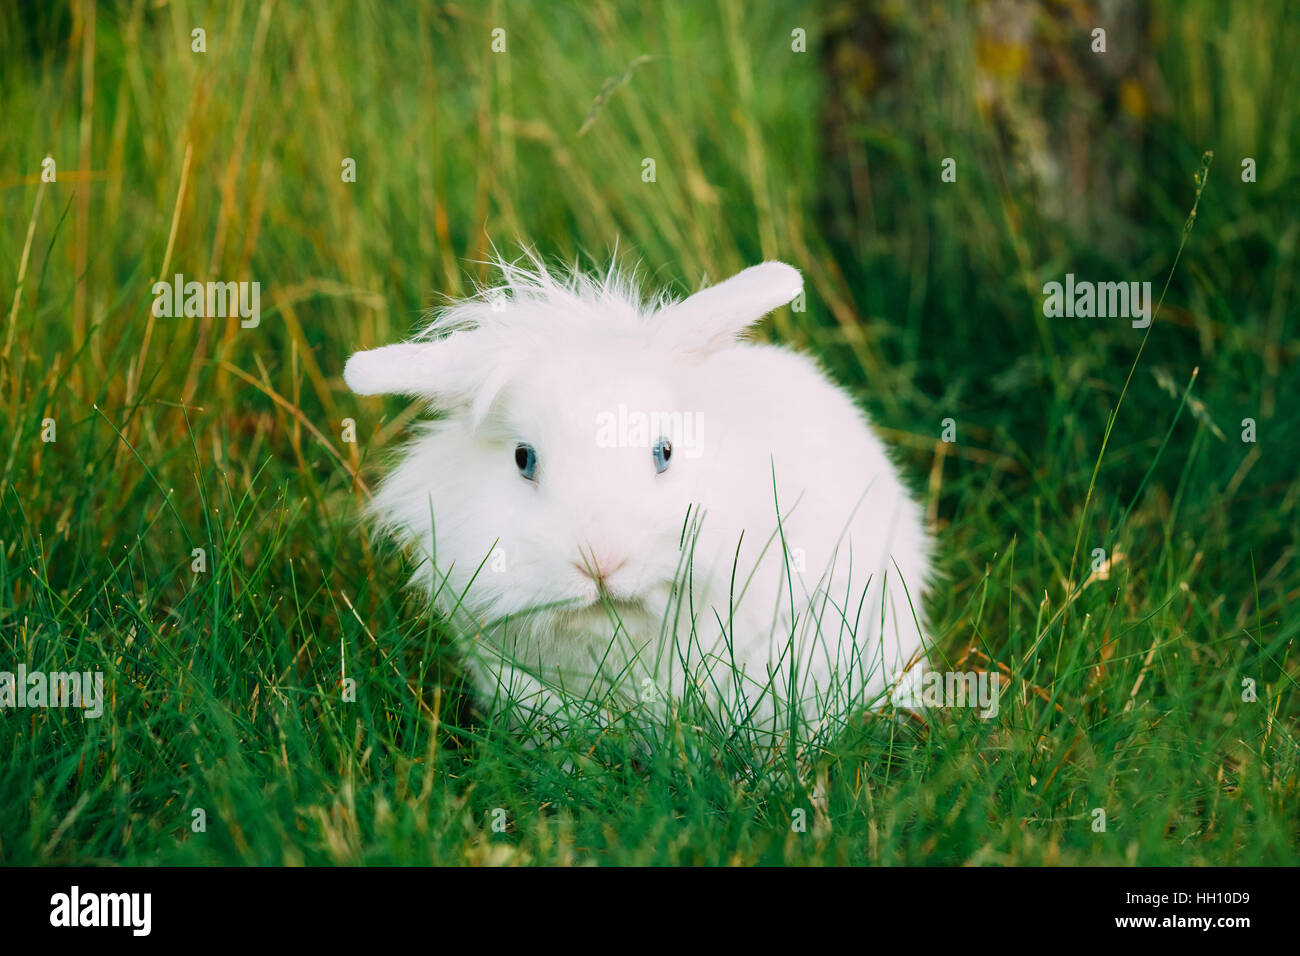 Close View Of Cute Dwarf Decorative Miniature Snow-White Fluffy Rabbit Bunny Mixed Breeds With Blue Eye Sitting - Stock Image